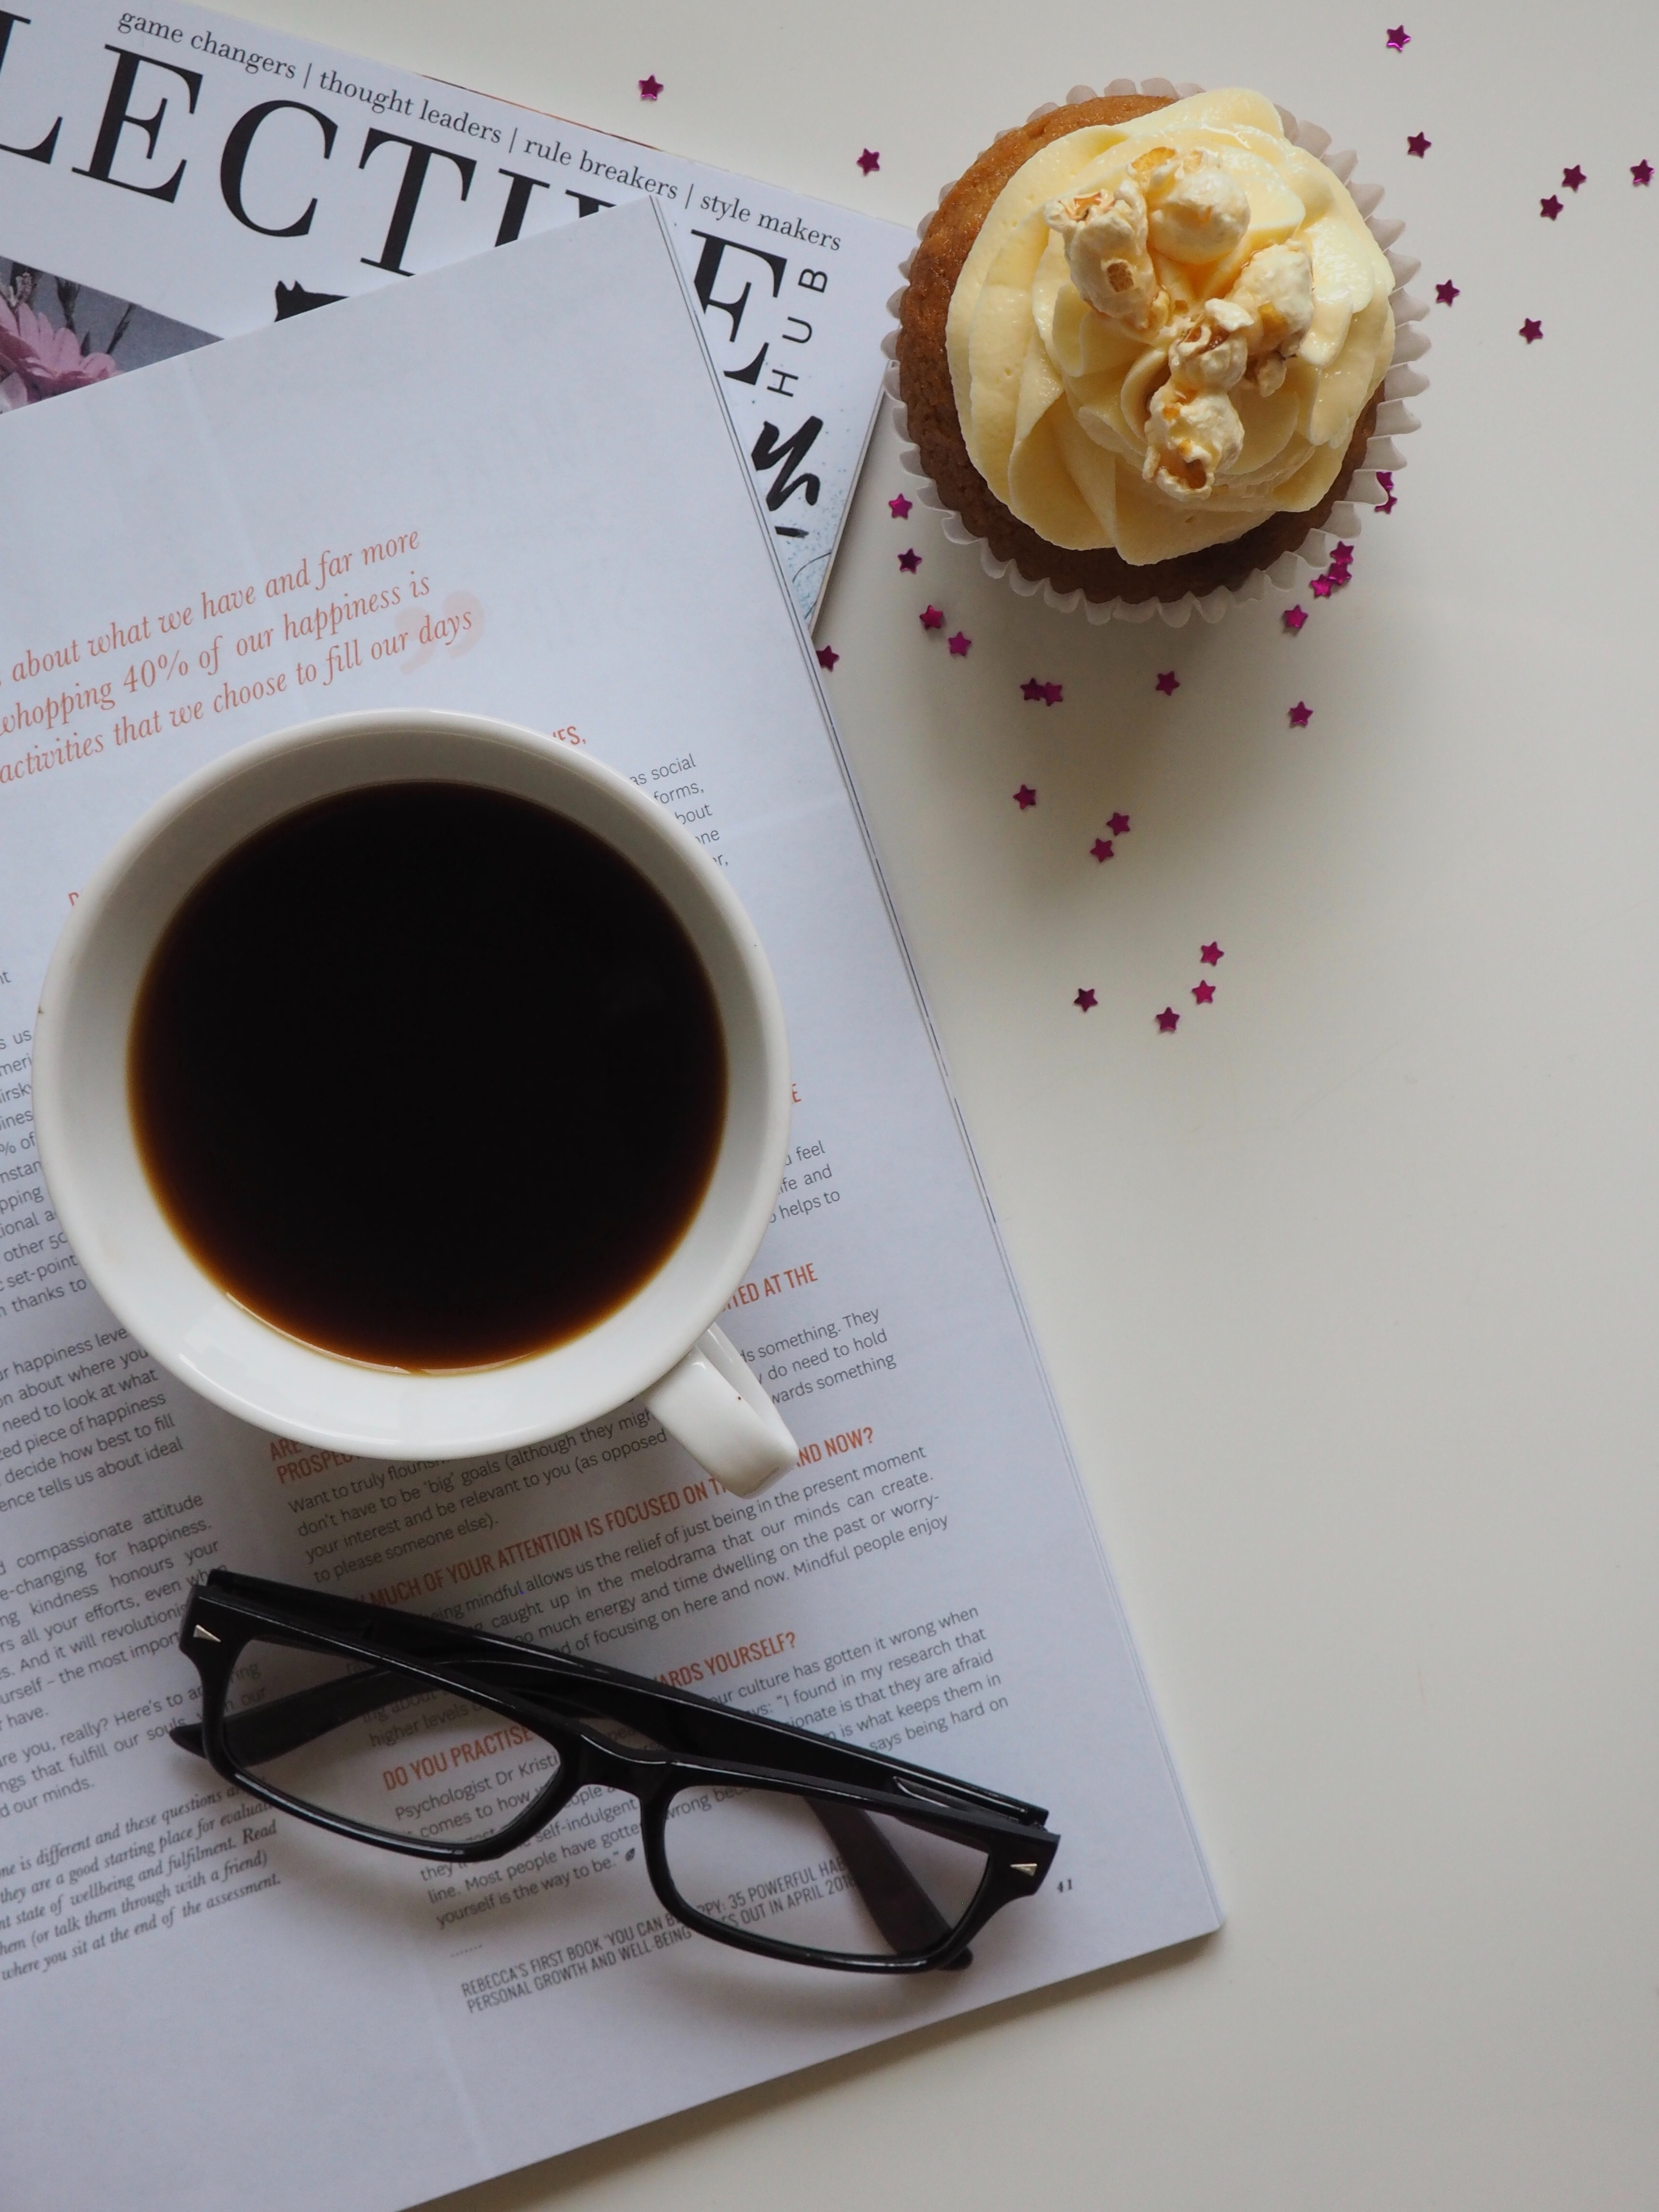 White ceramic cup with coffee on top of opened book and near eyeglasses photo